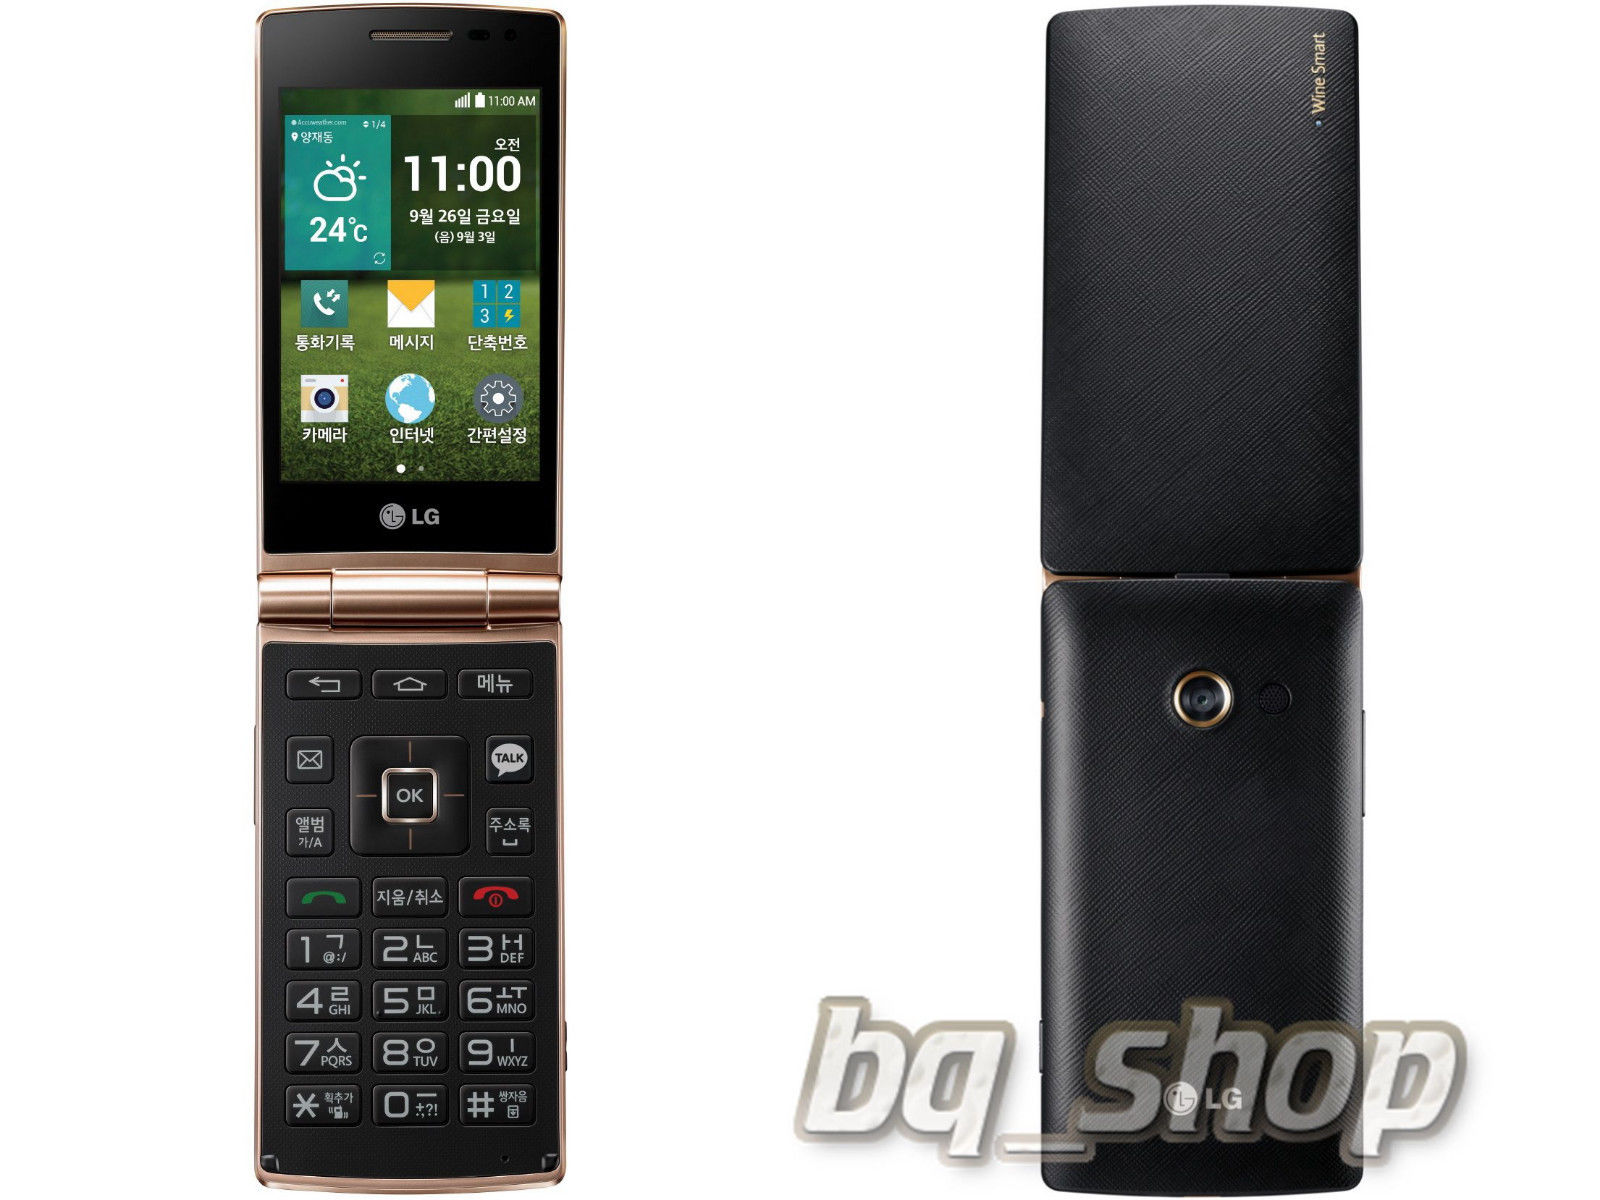 LG Wine Smart Quad Core HVGA 8MP Black